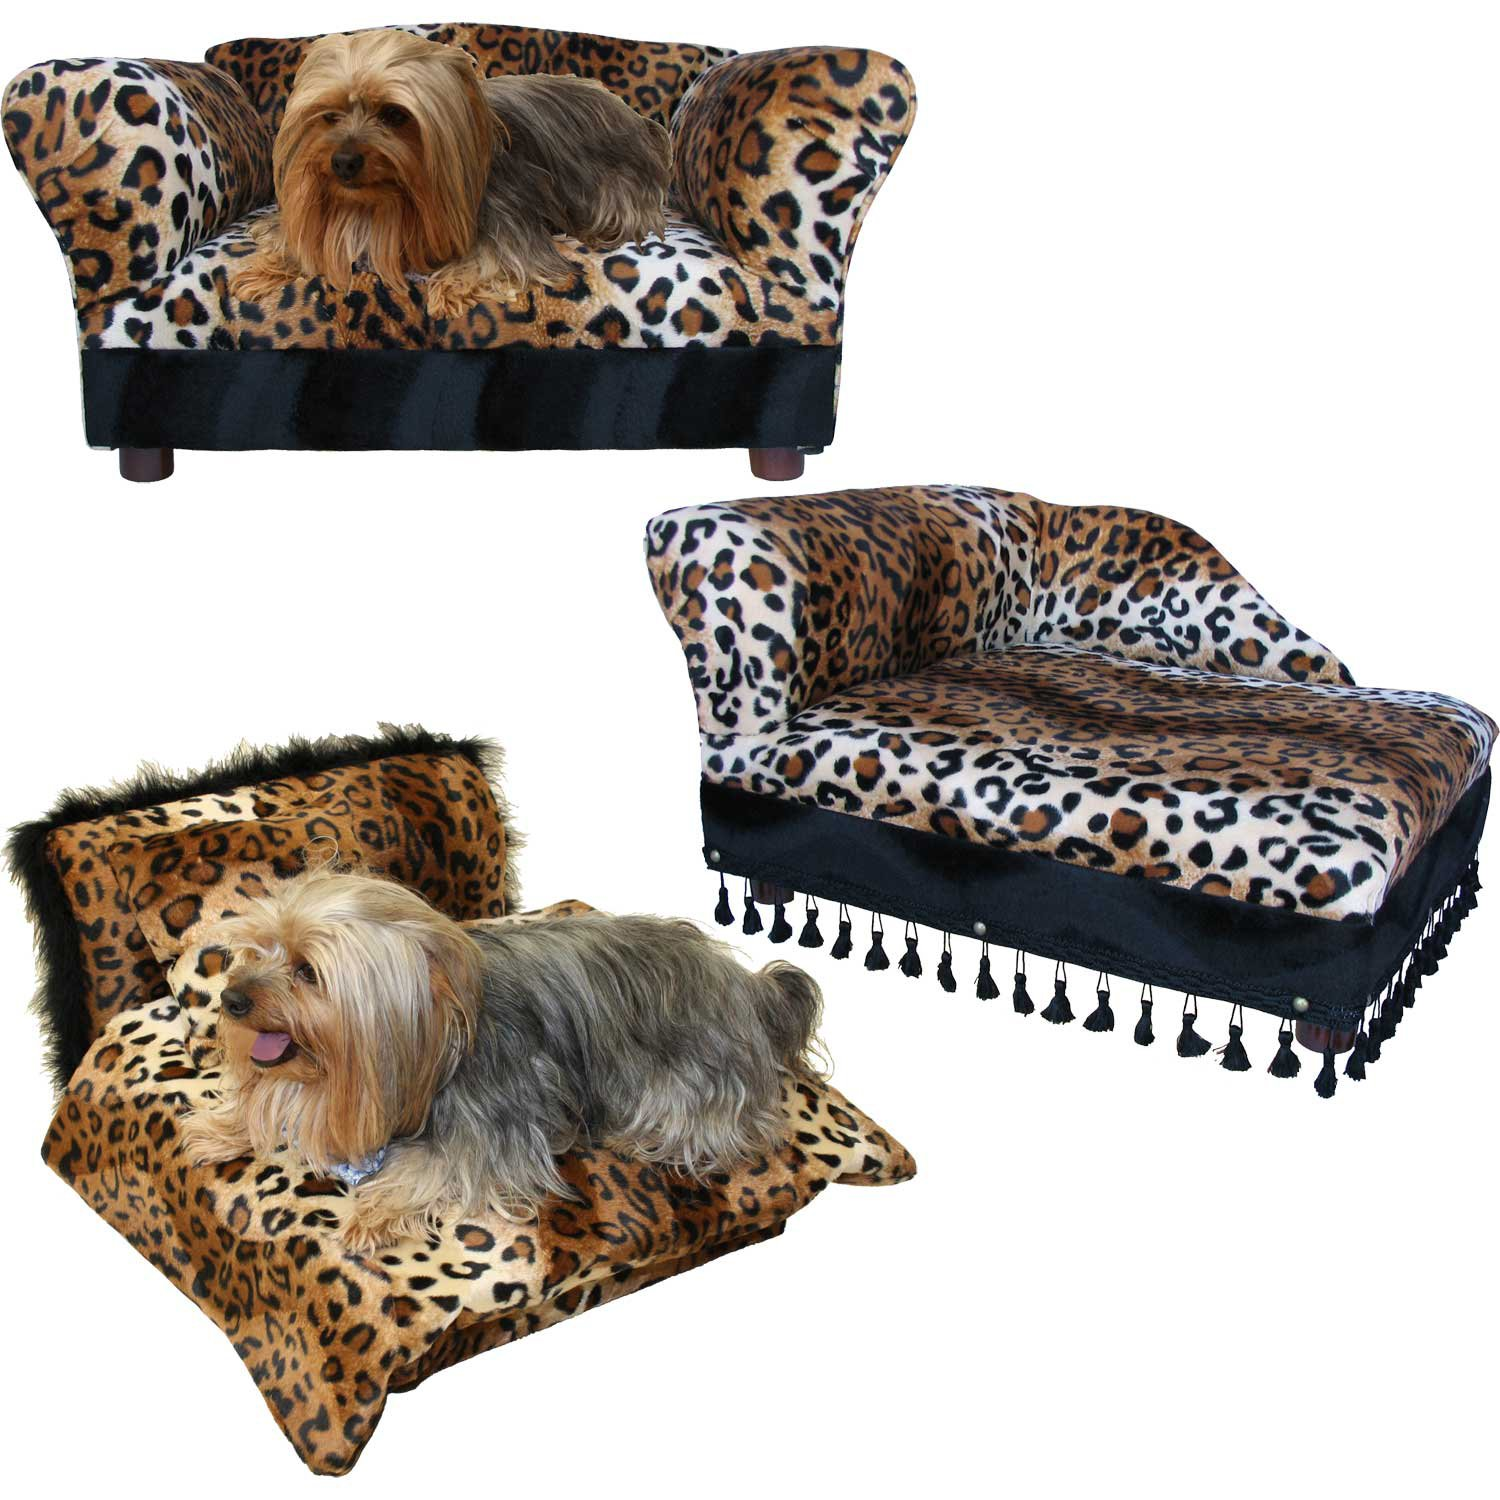 Your Home Tips Ideas And Solutions Dog Beds That Look Like Furniture